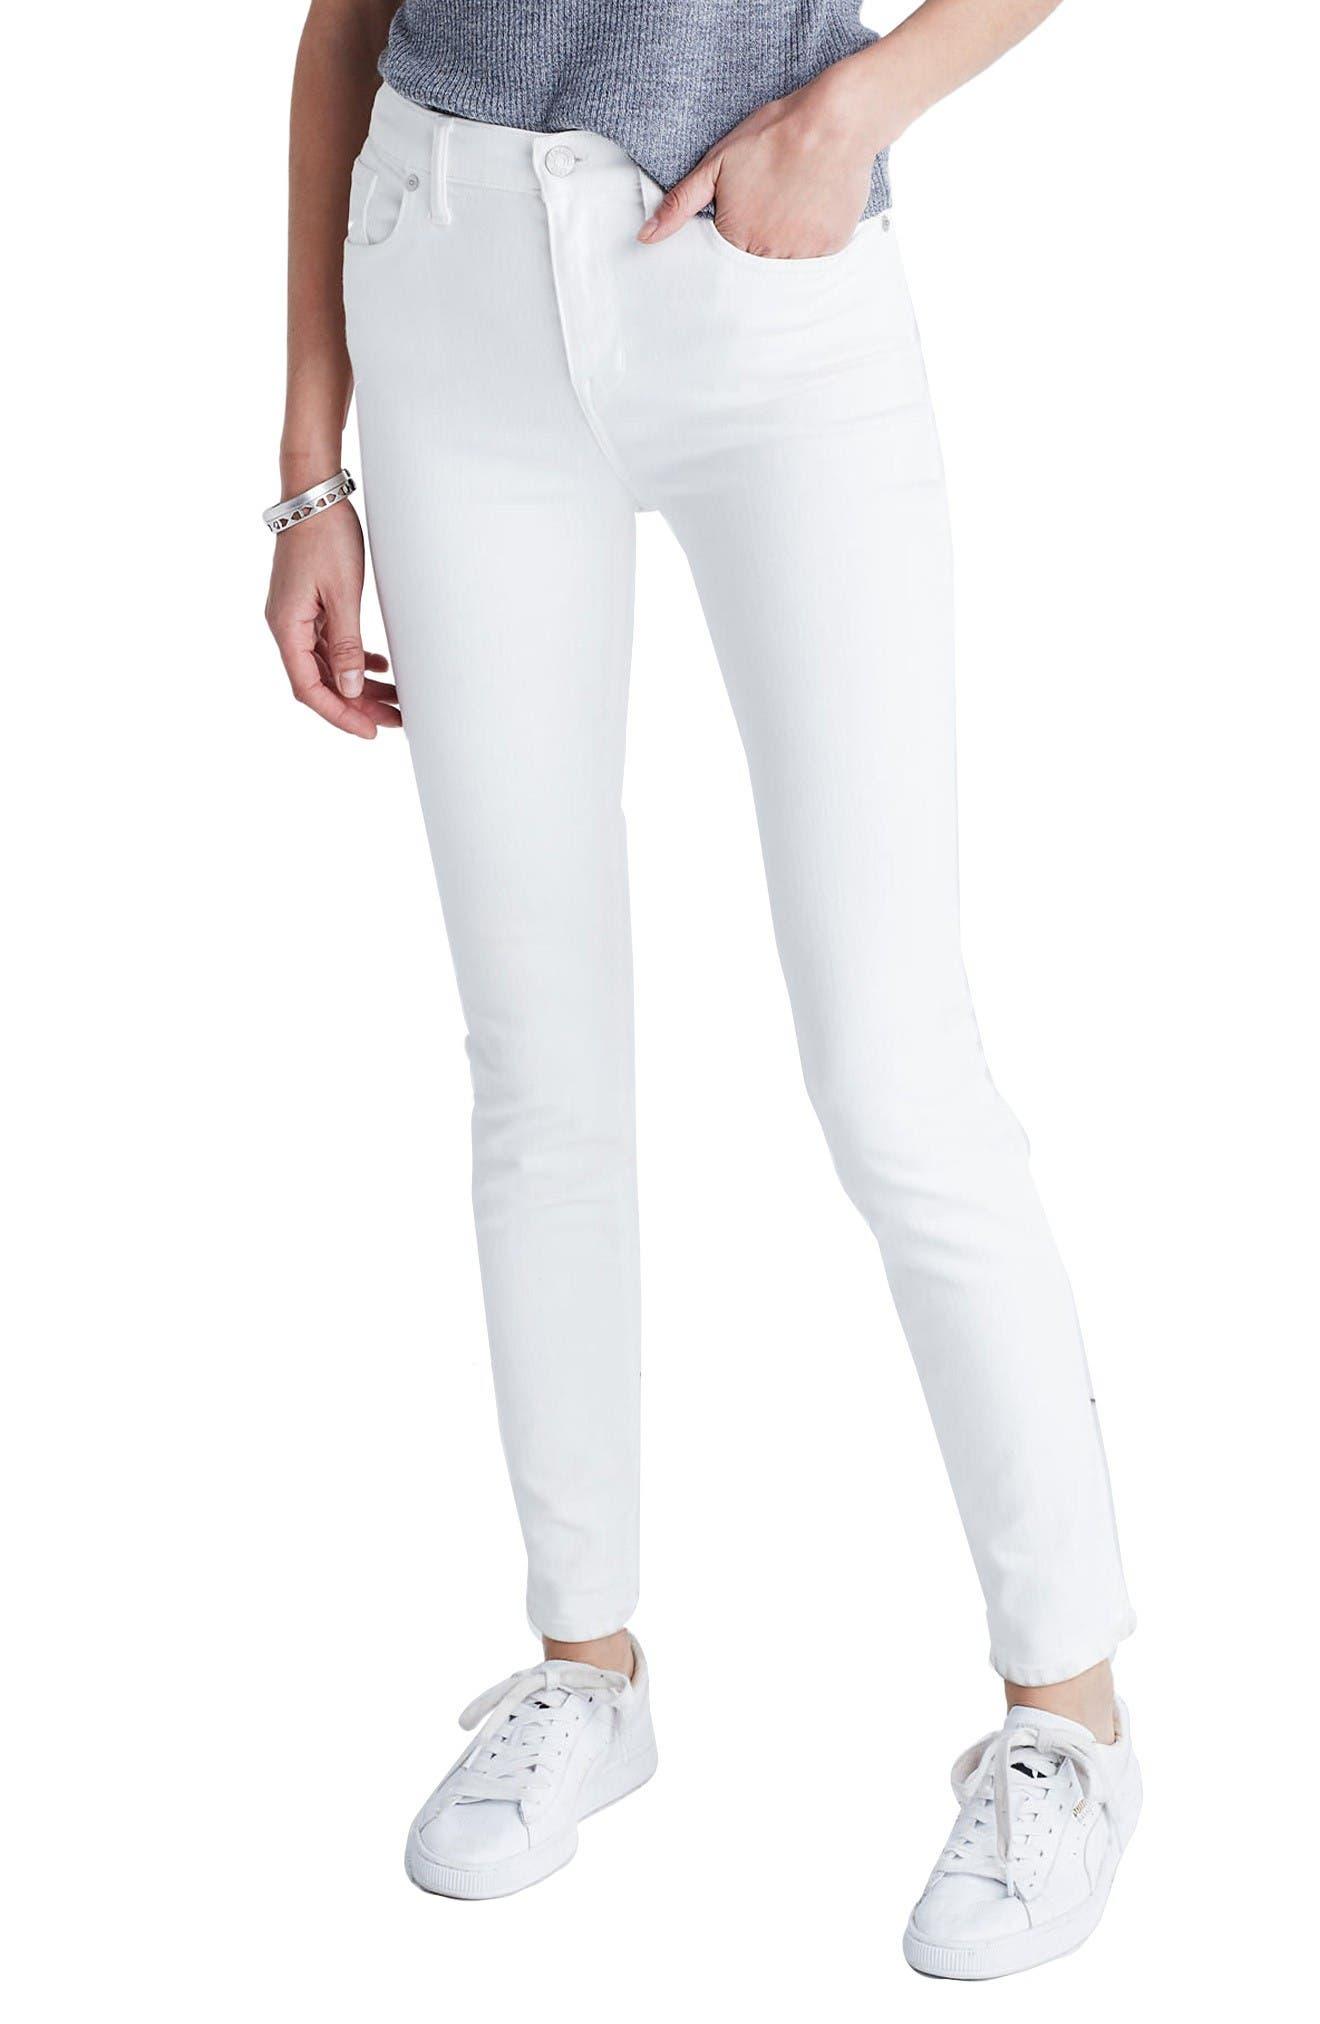 Alternate Image 1 Selected - Madewell 9-Inch High-Rise Skinny Jeans (Pure White)